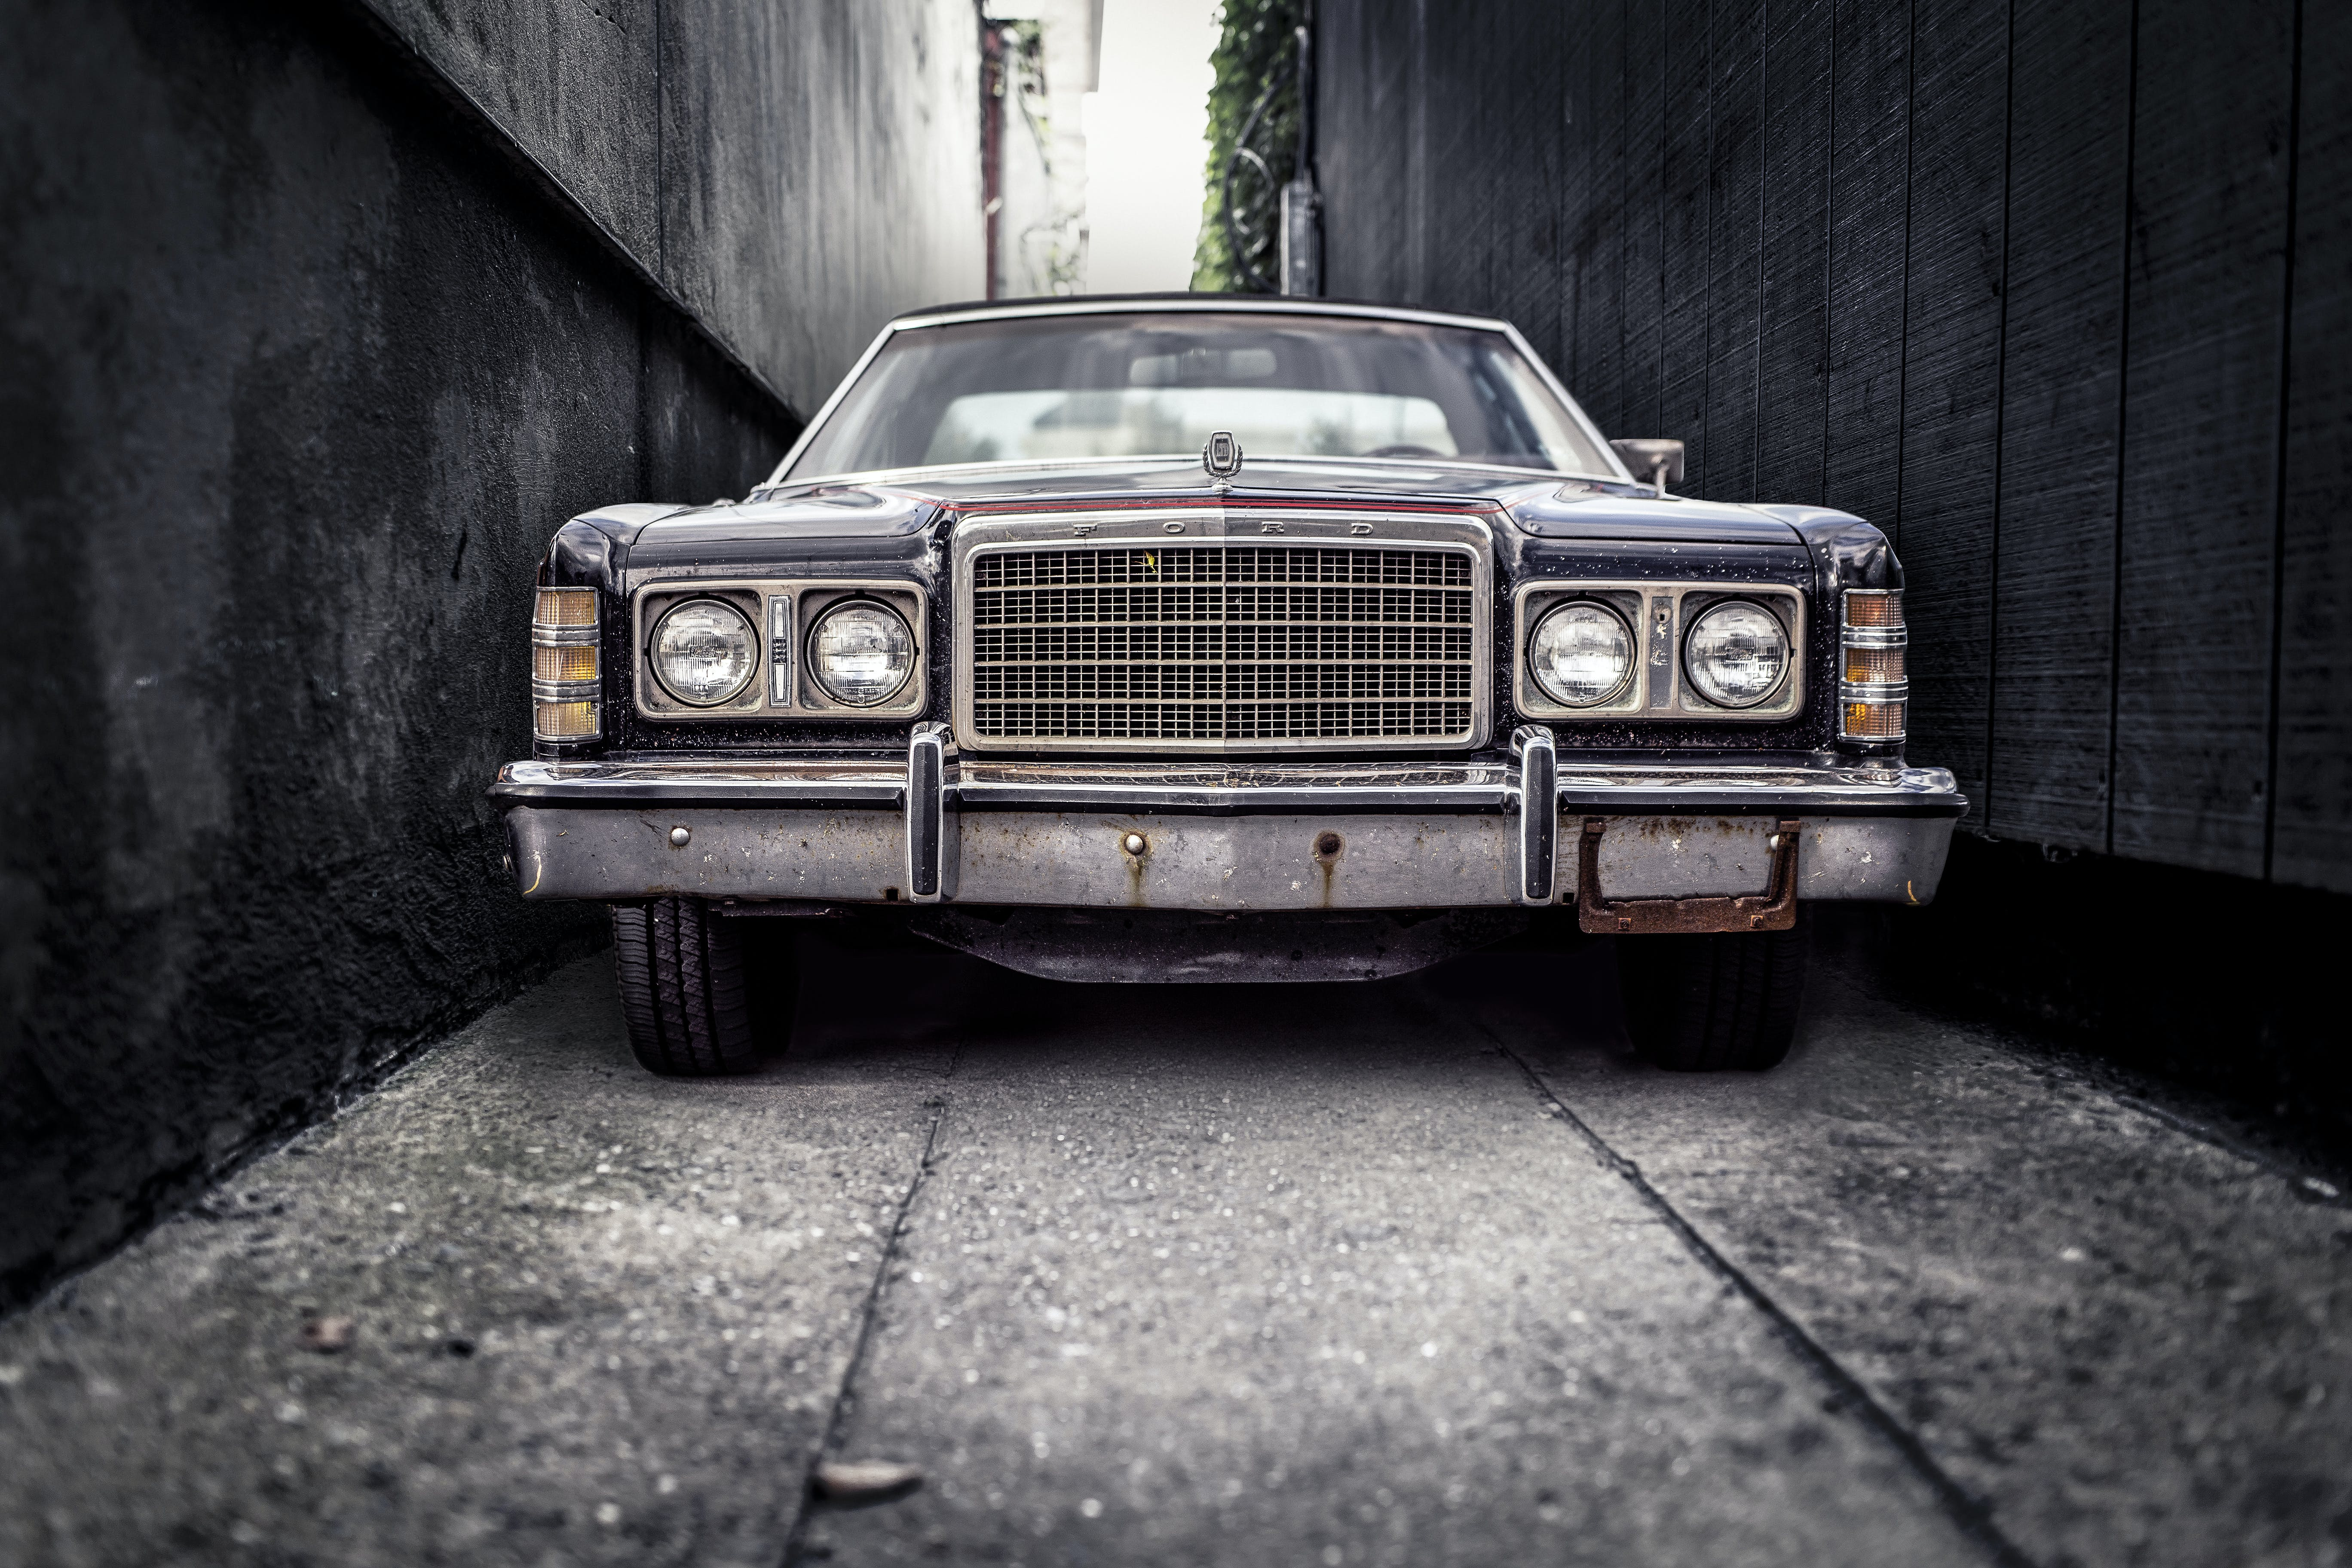 Free stock photo of car, vintage, parking, narrow